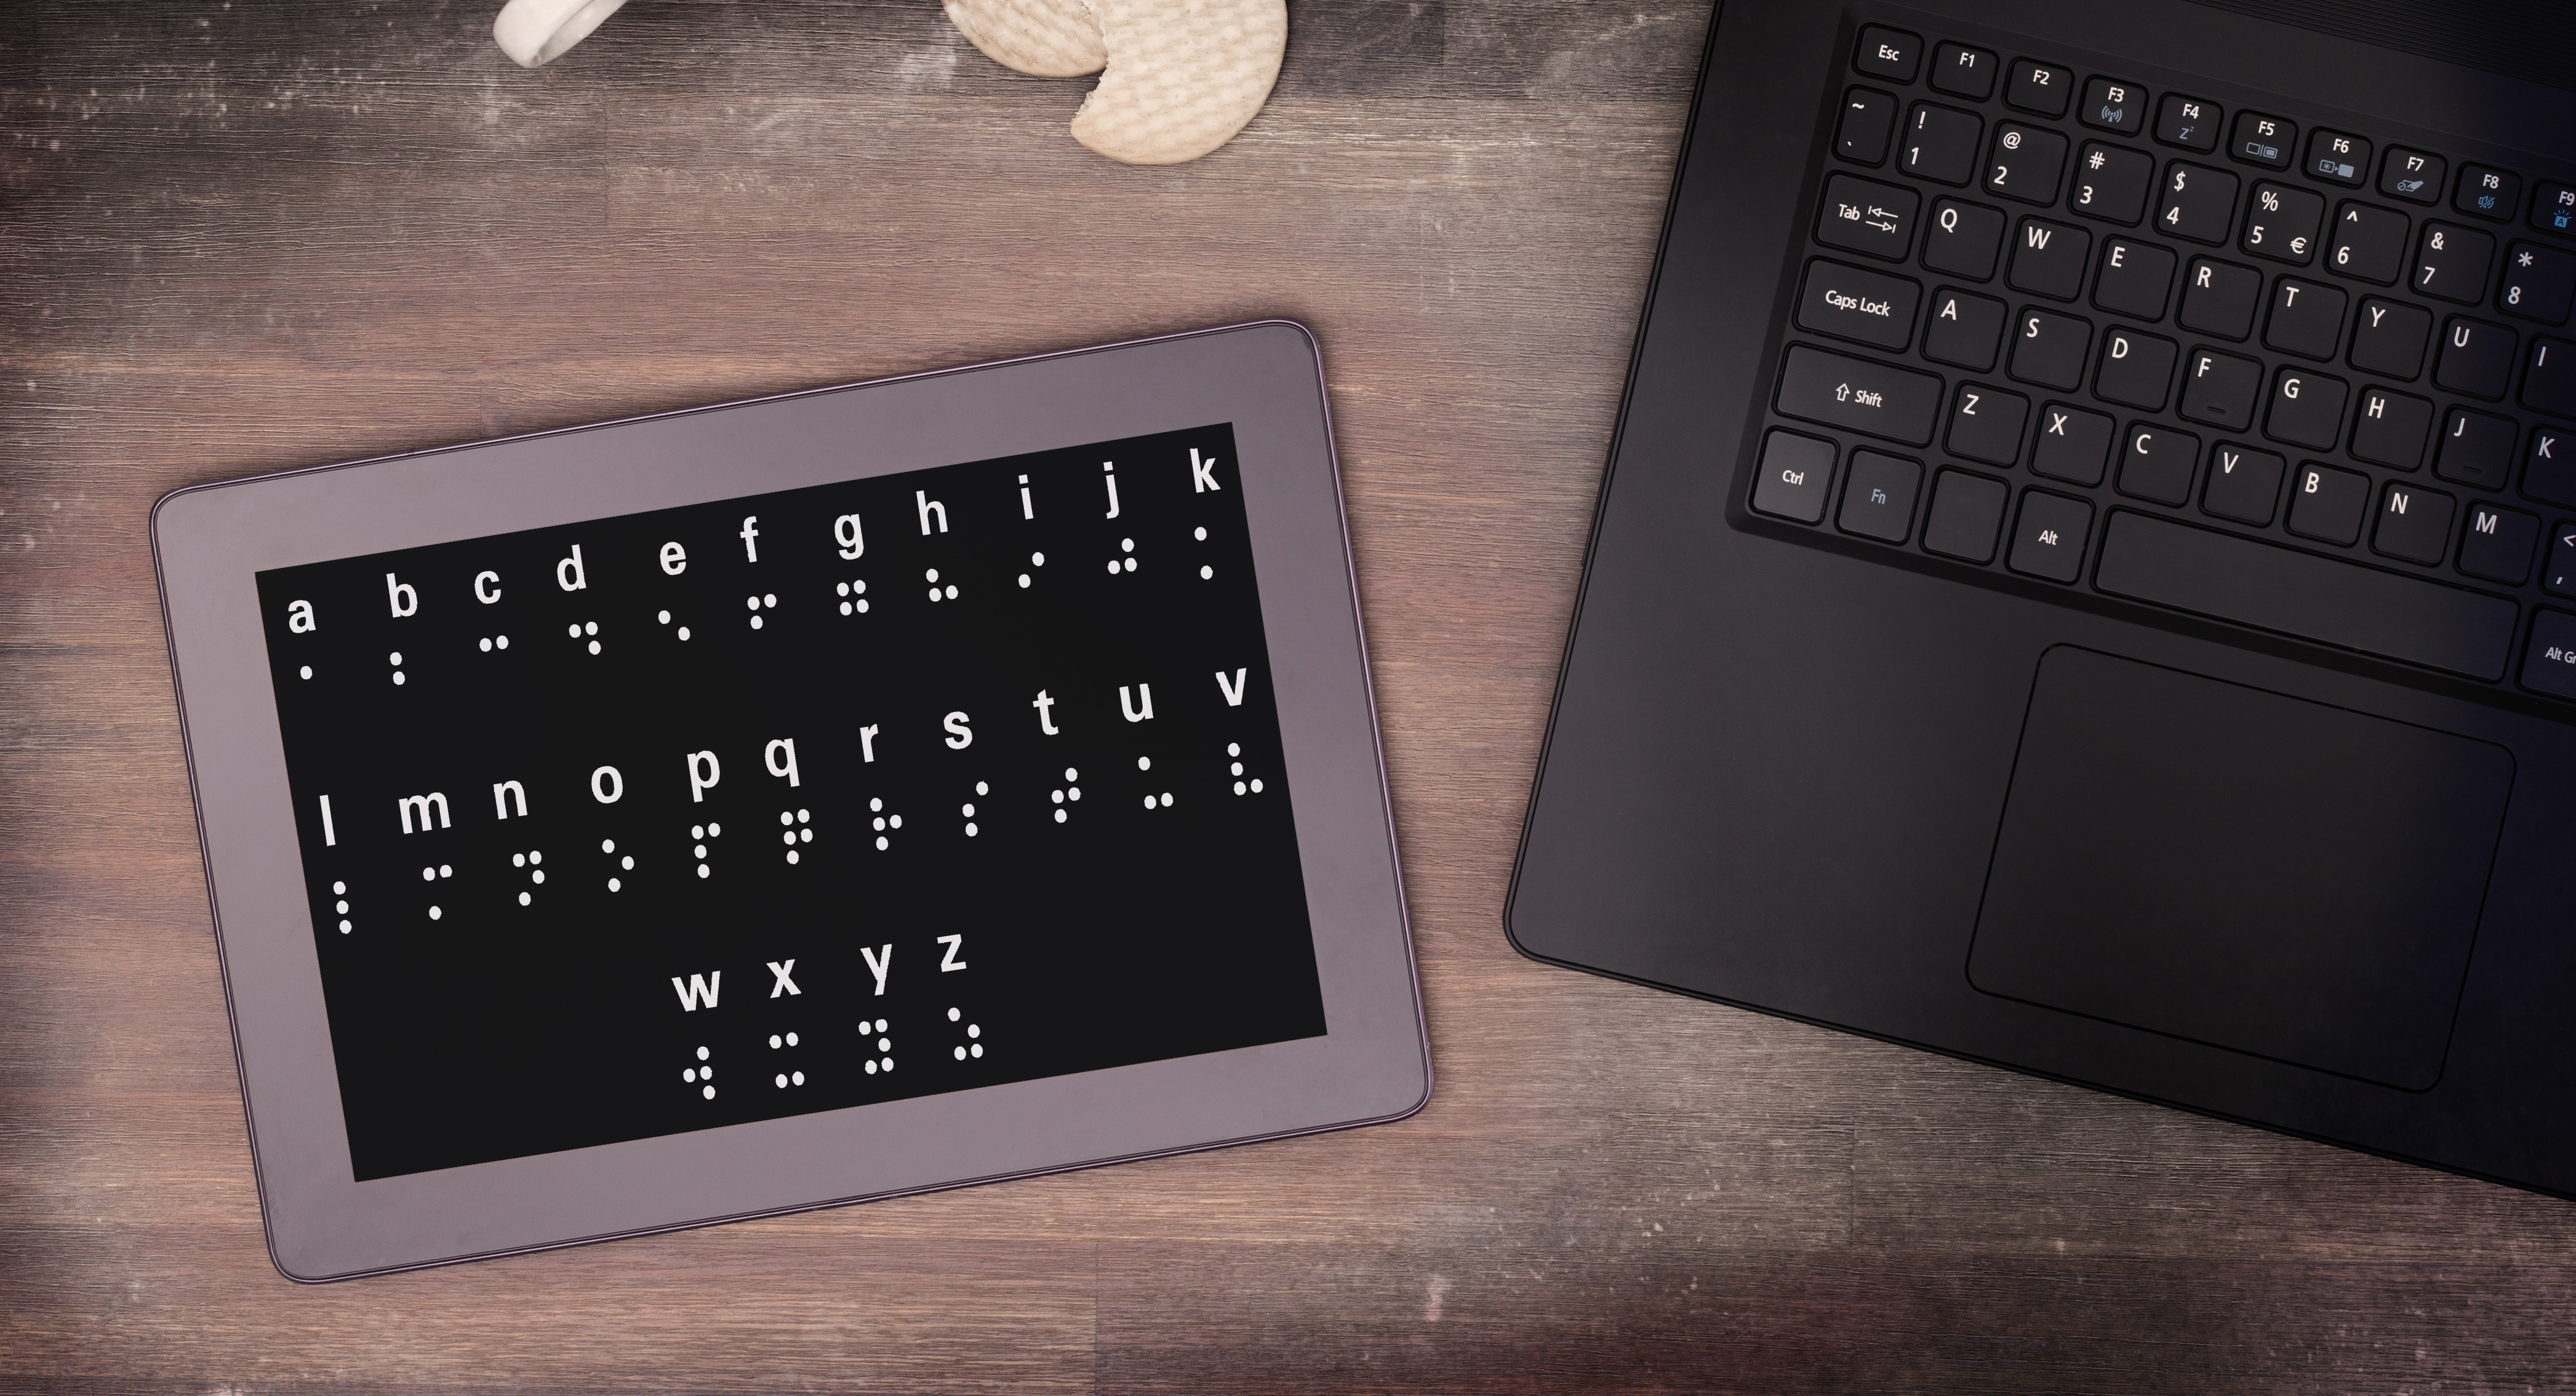 Braille on a tablet-1.jpeg